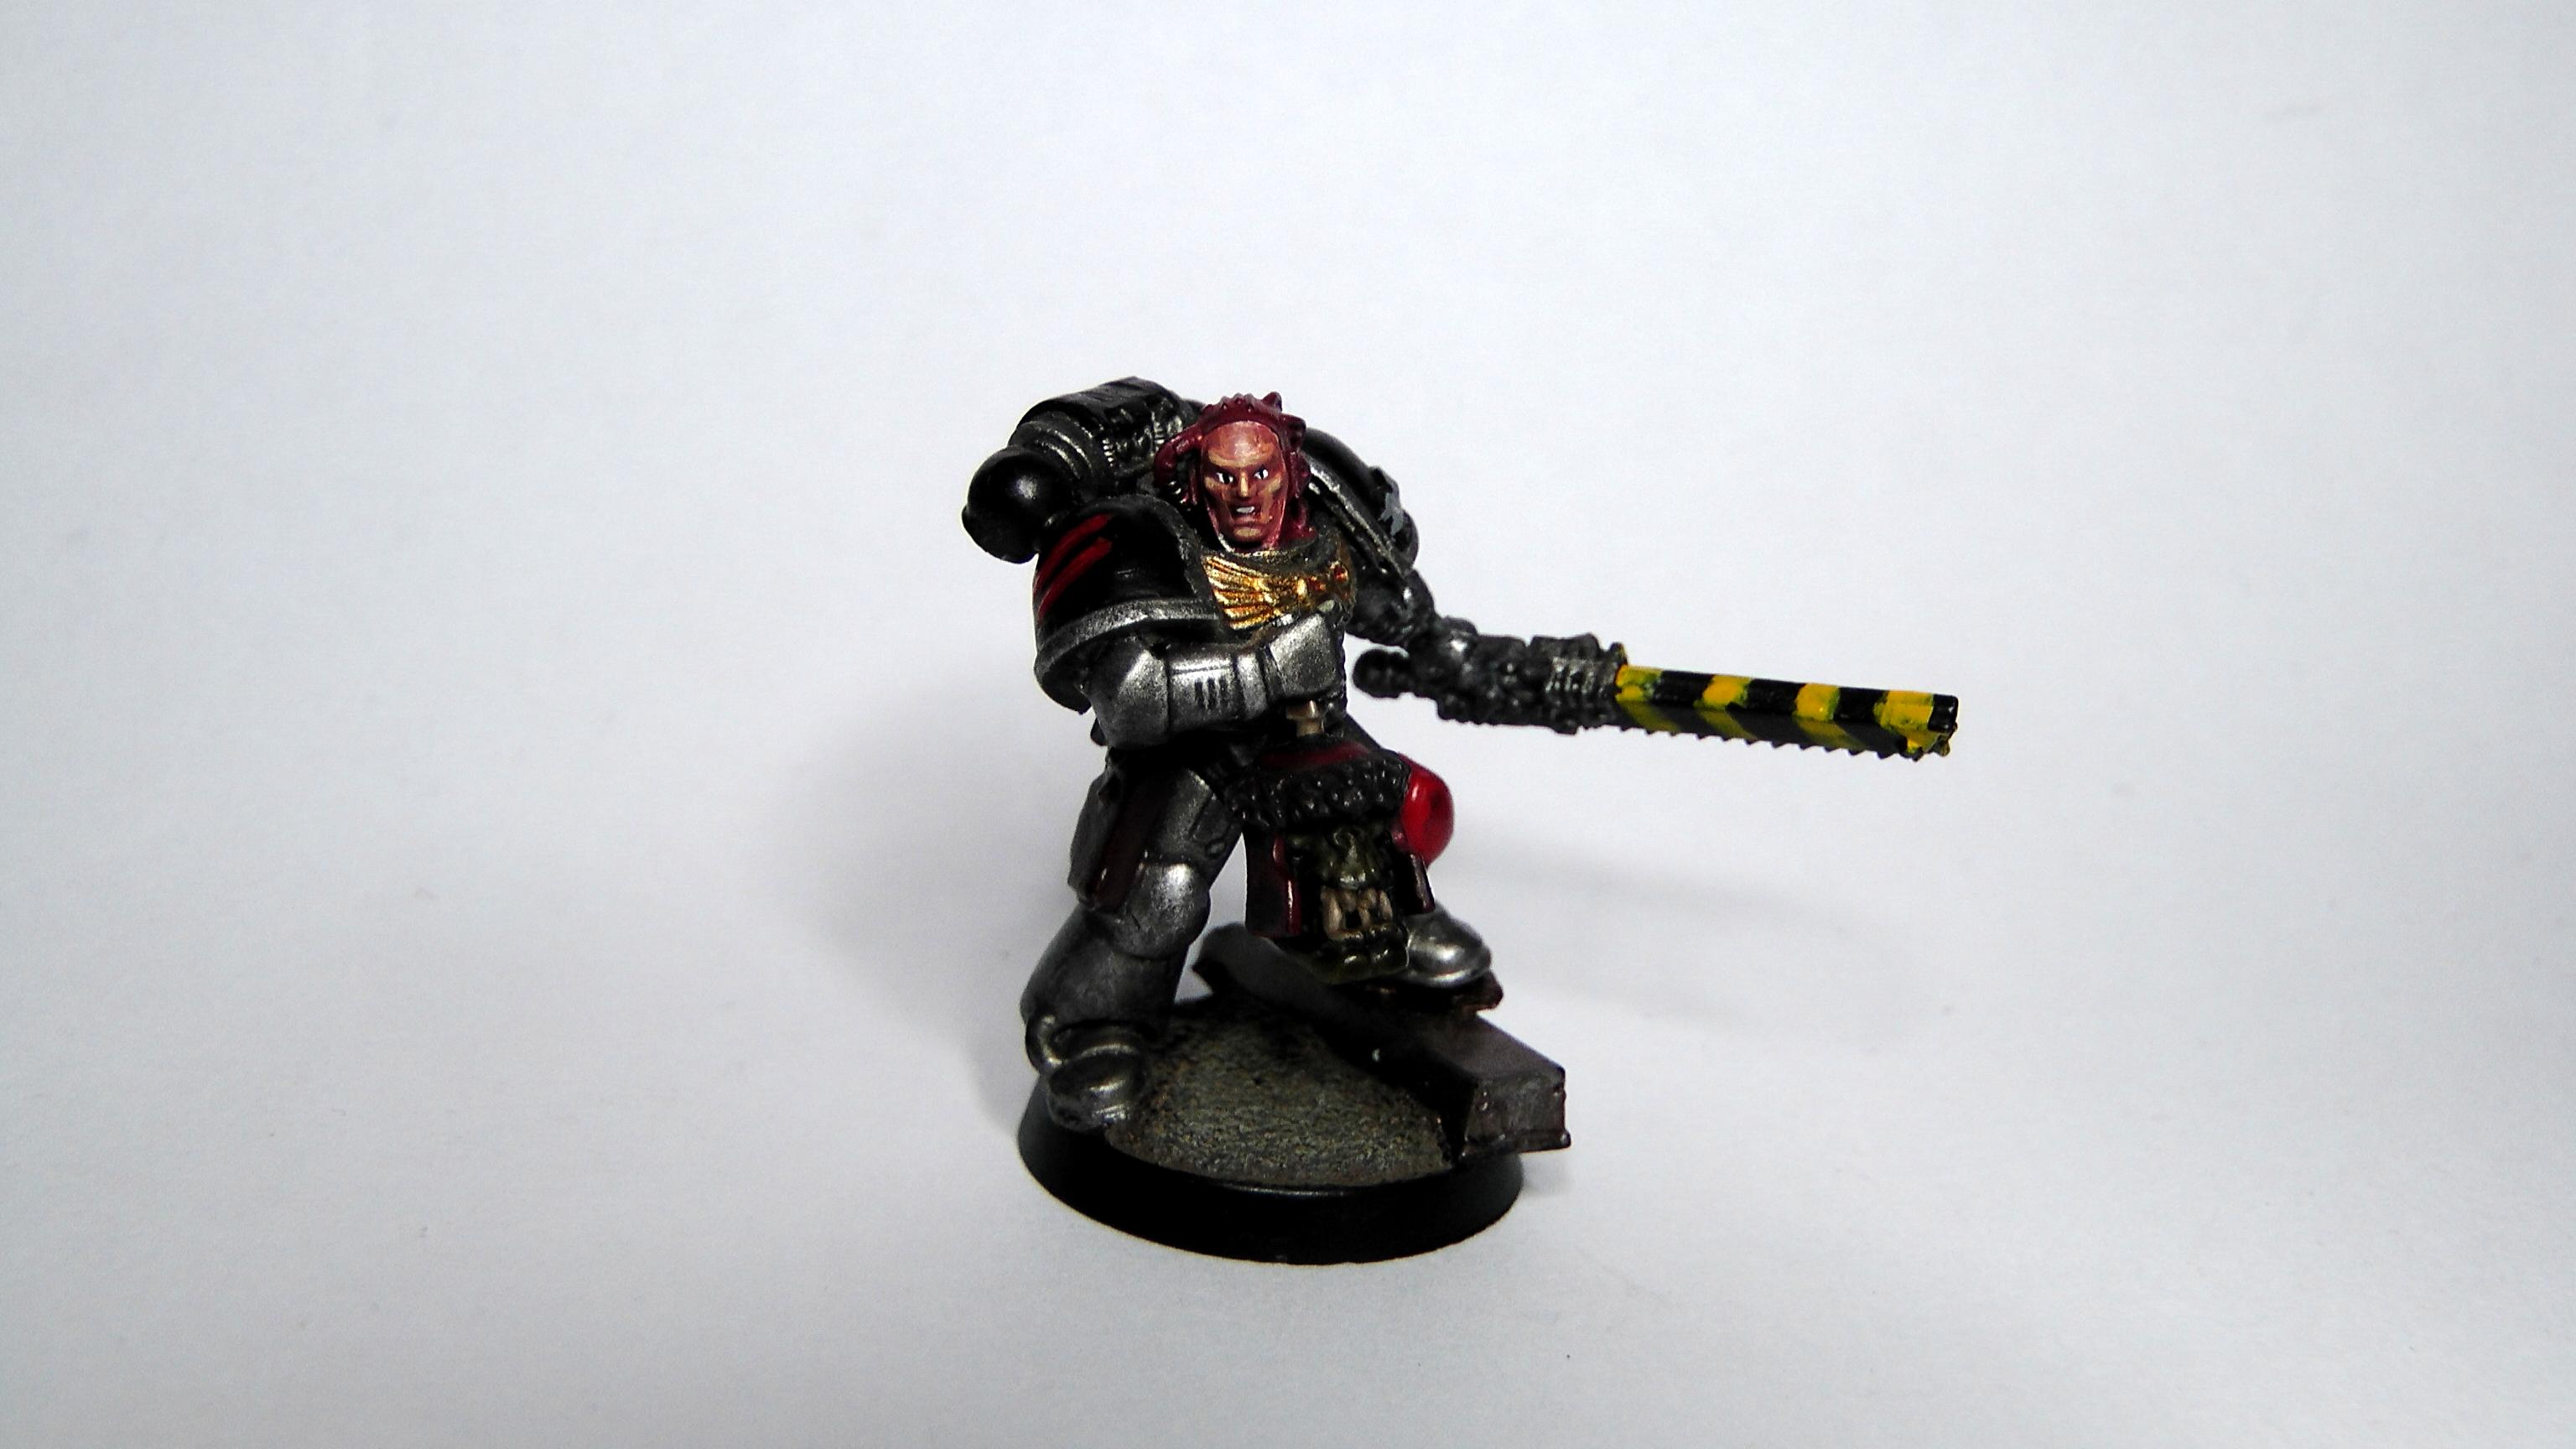 Chainsword, Face, Ork Head, Sergeant, Silver Skulls, Space Marines, Urban Base, Warhammer 40,000